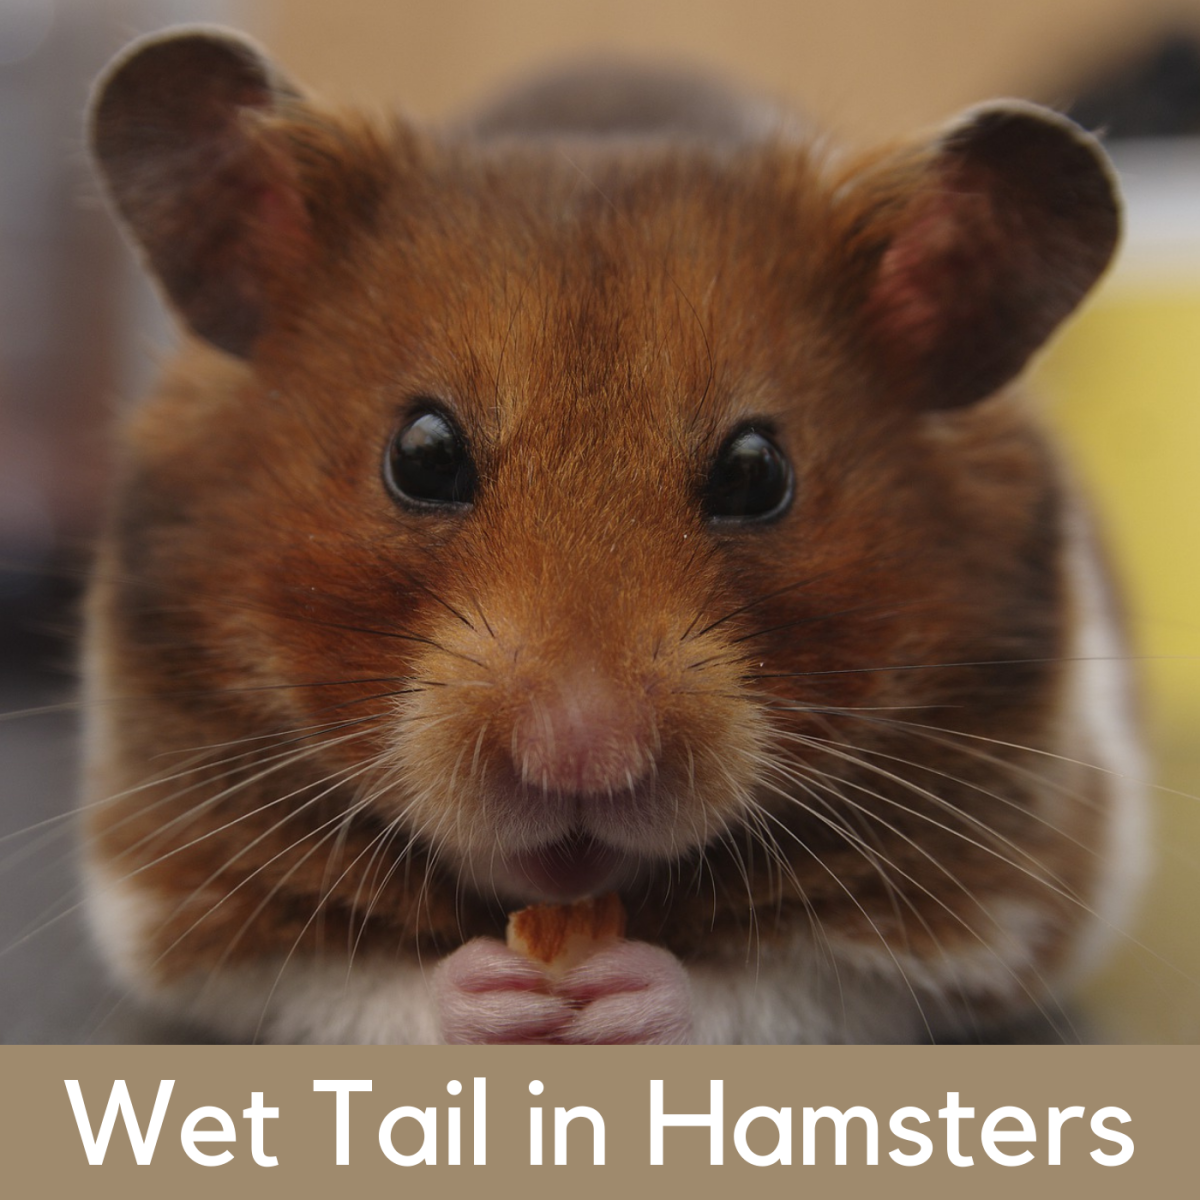 Learn how to identify the symptoms of wet tail, a serious condition that needs to be treated by a vet.